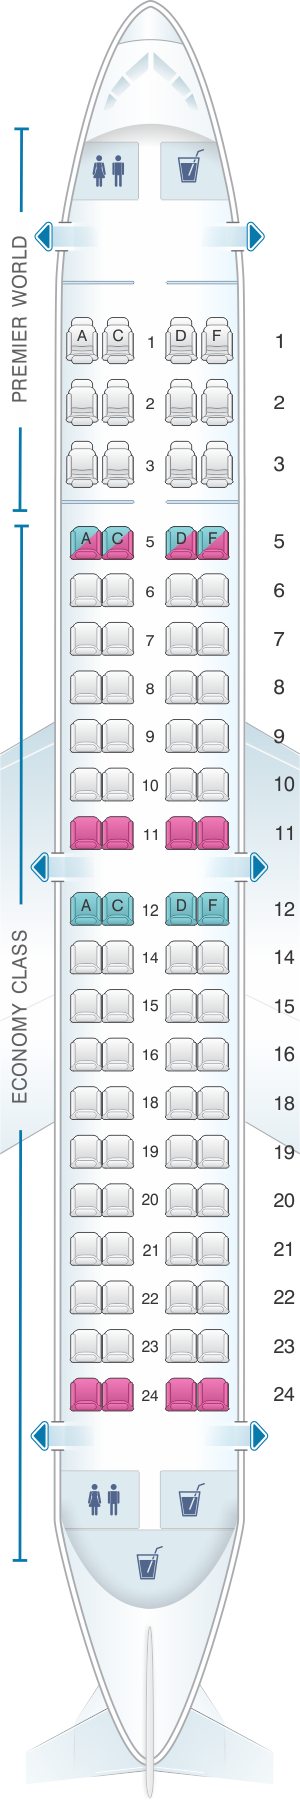 Seat map for Kenya Airways Embraer 190AR